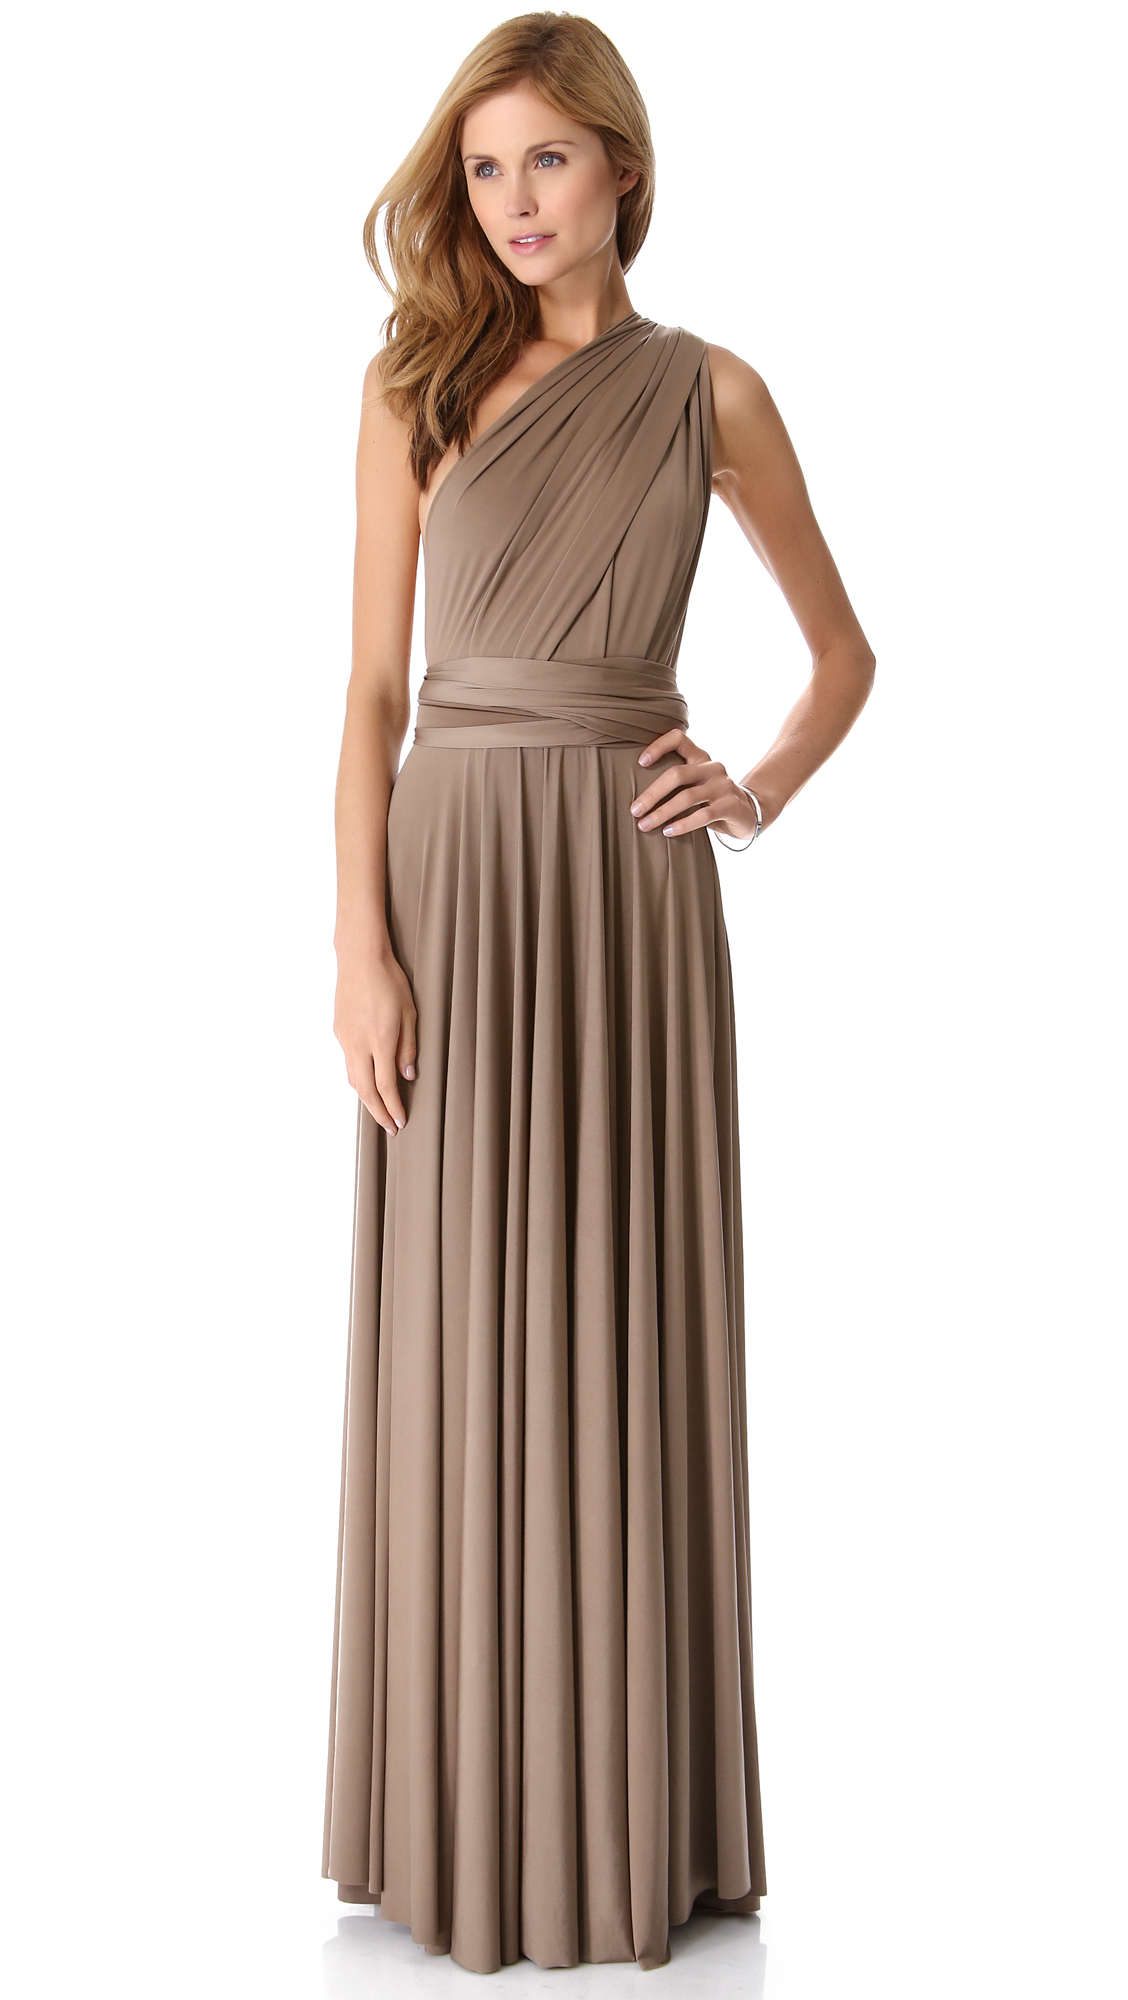 Lyst  Twobirds Convertible Maxi Dress in Brown